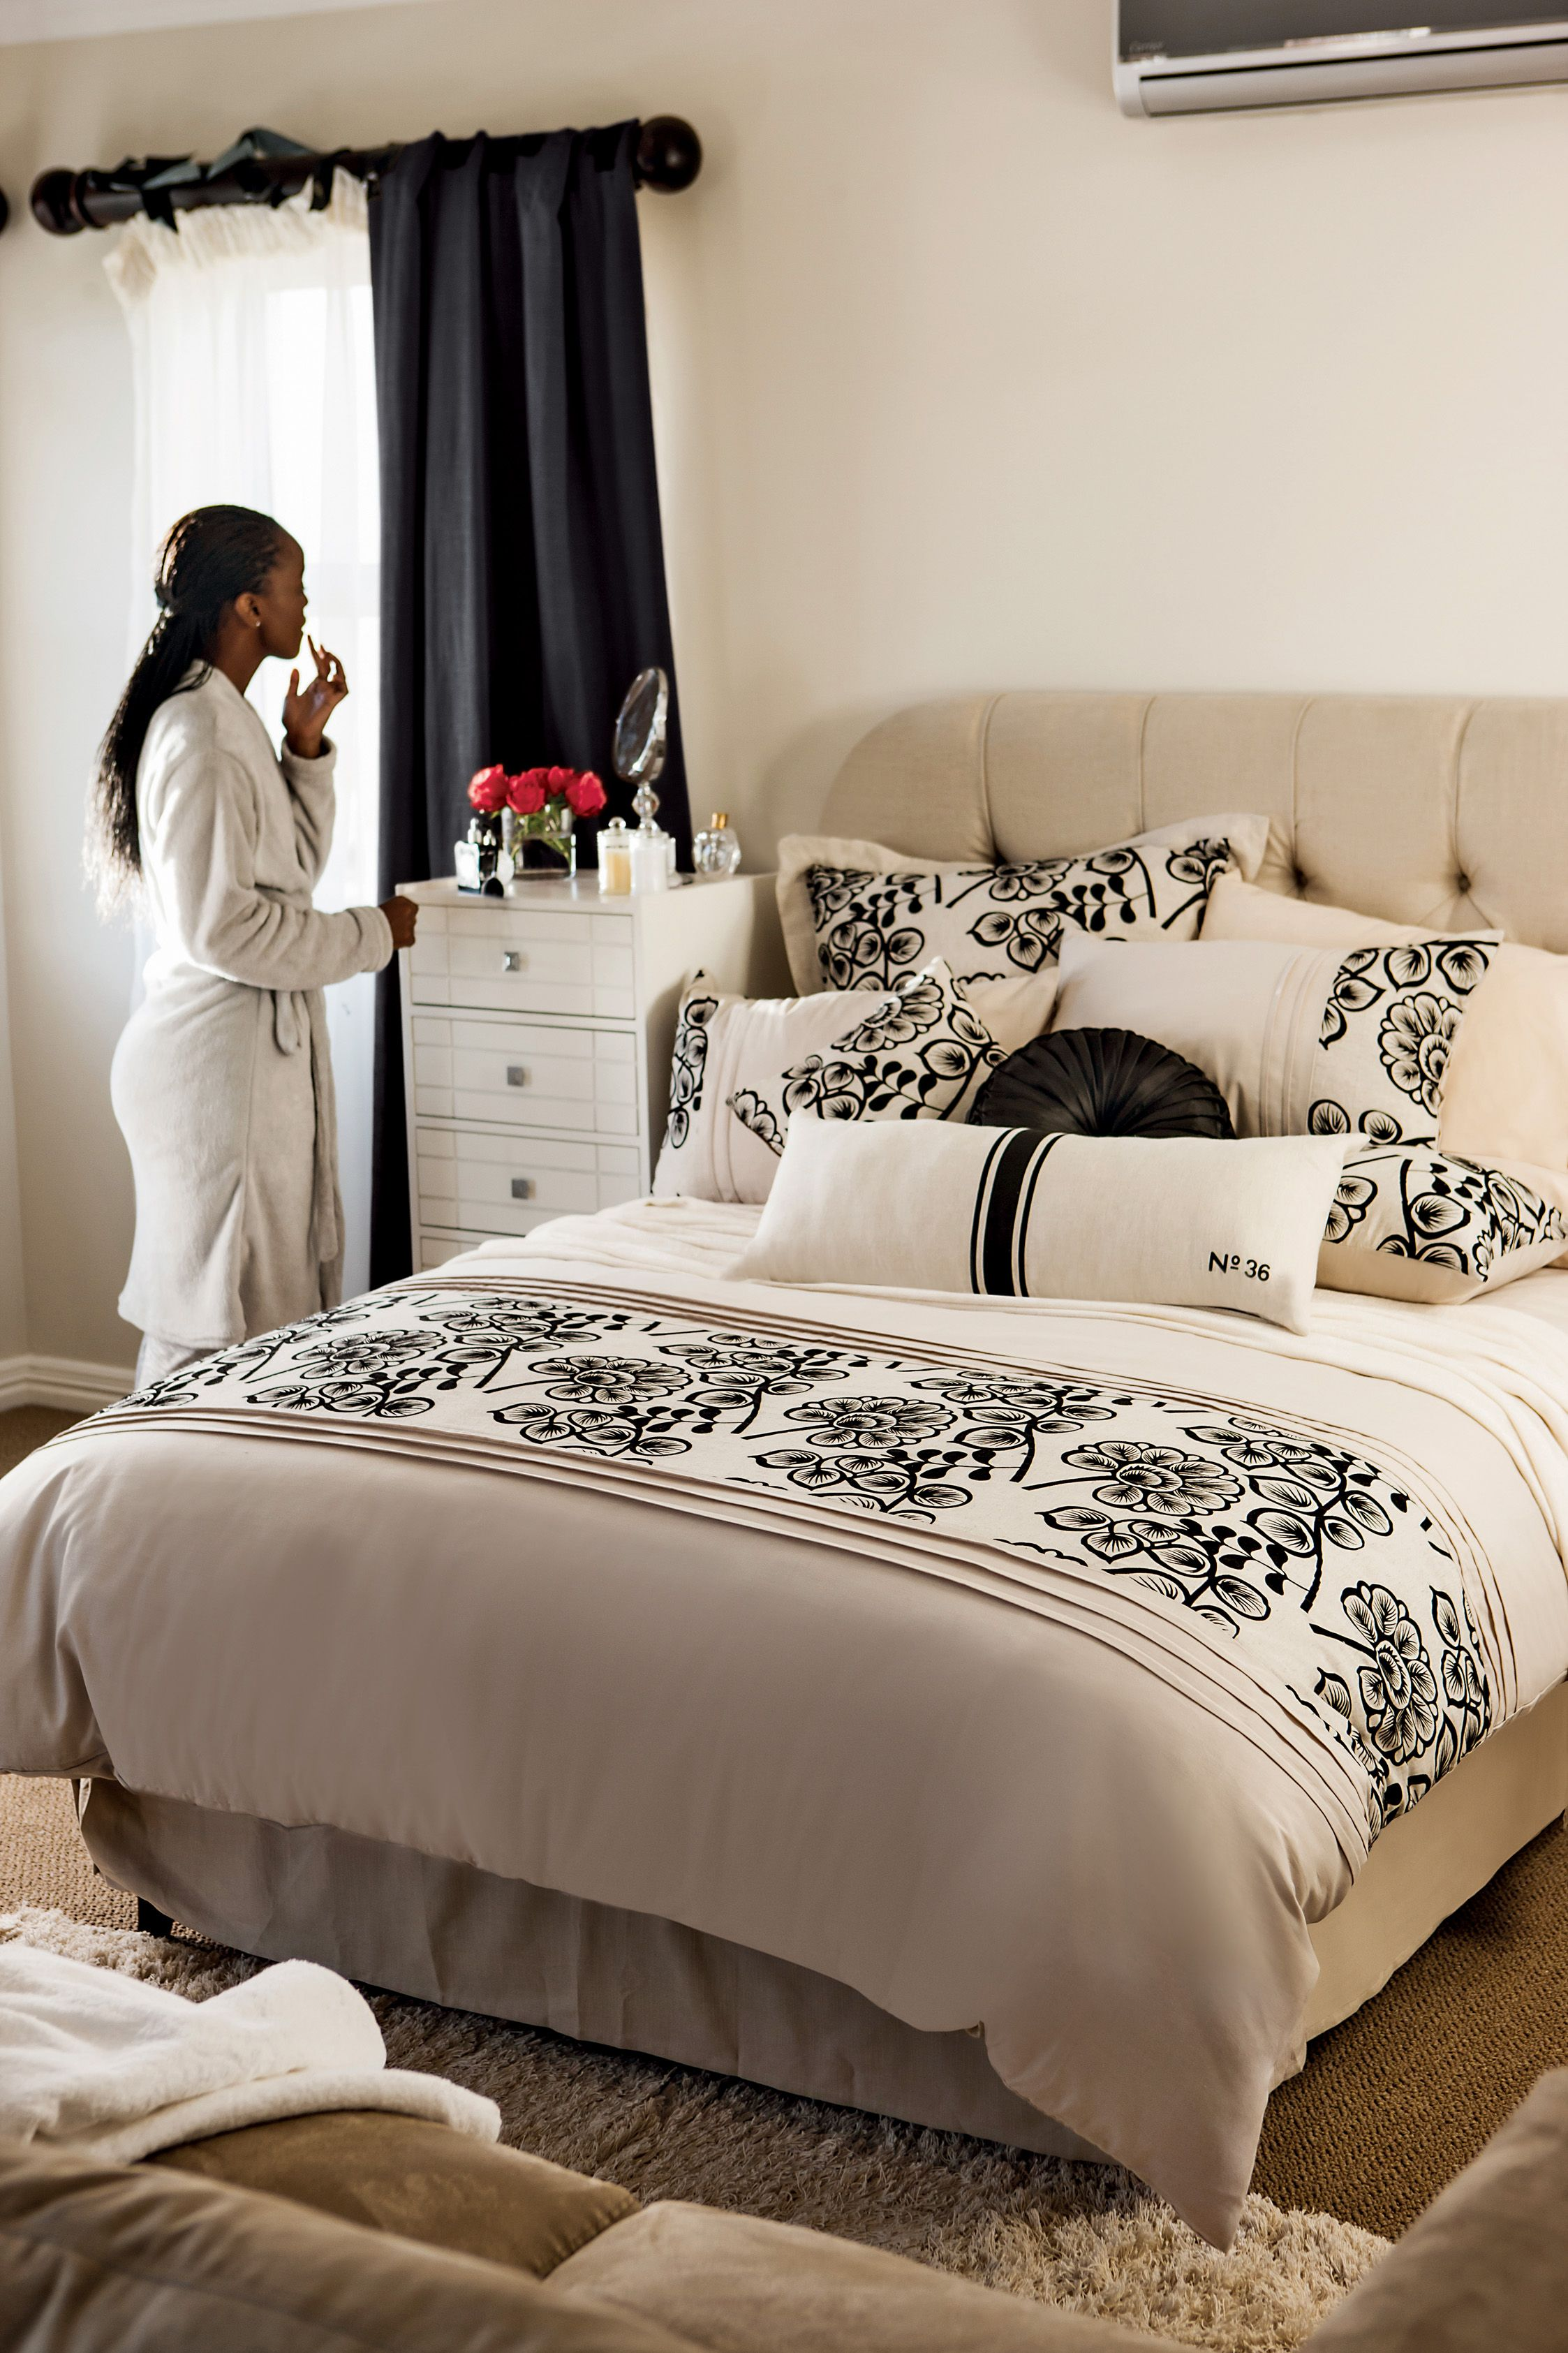 Mr price home bedroom view our range at for Home designs comforter